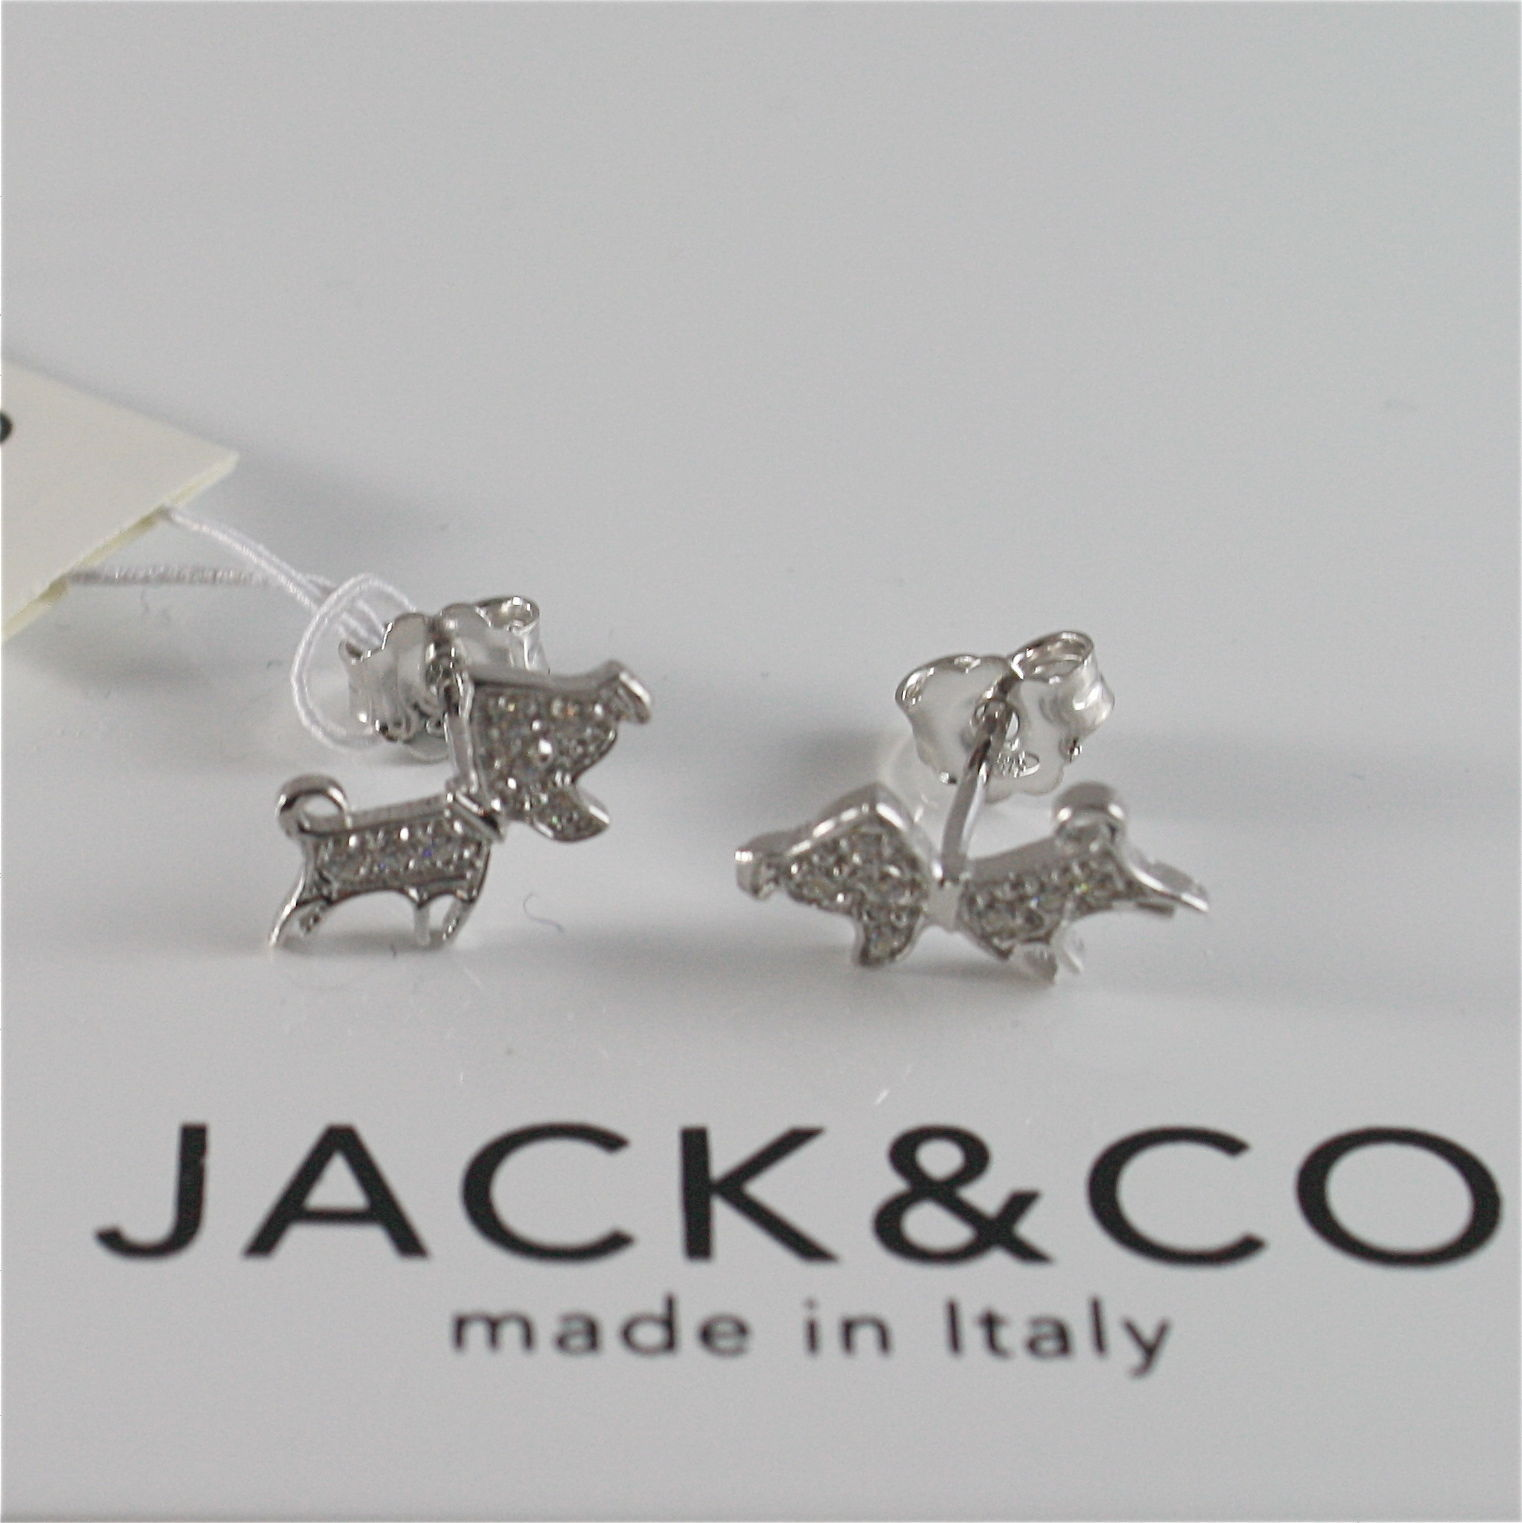 925 RHODIUM SILVER JACK&CO EARRINGS WITH PUPPY DOG JACK RUSSEL MADE IN ITALY